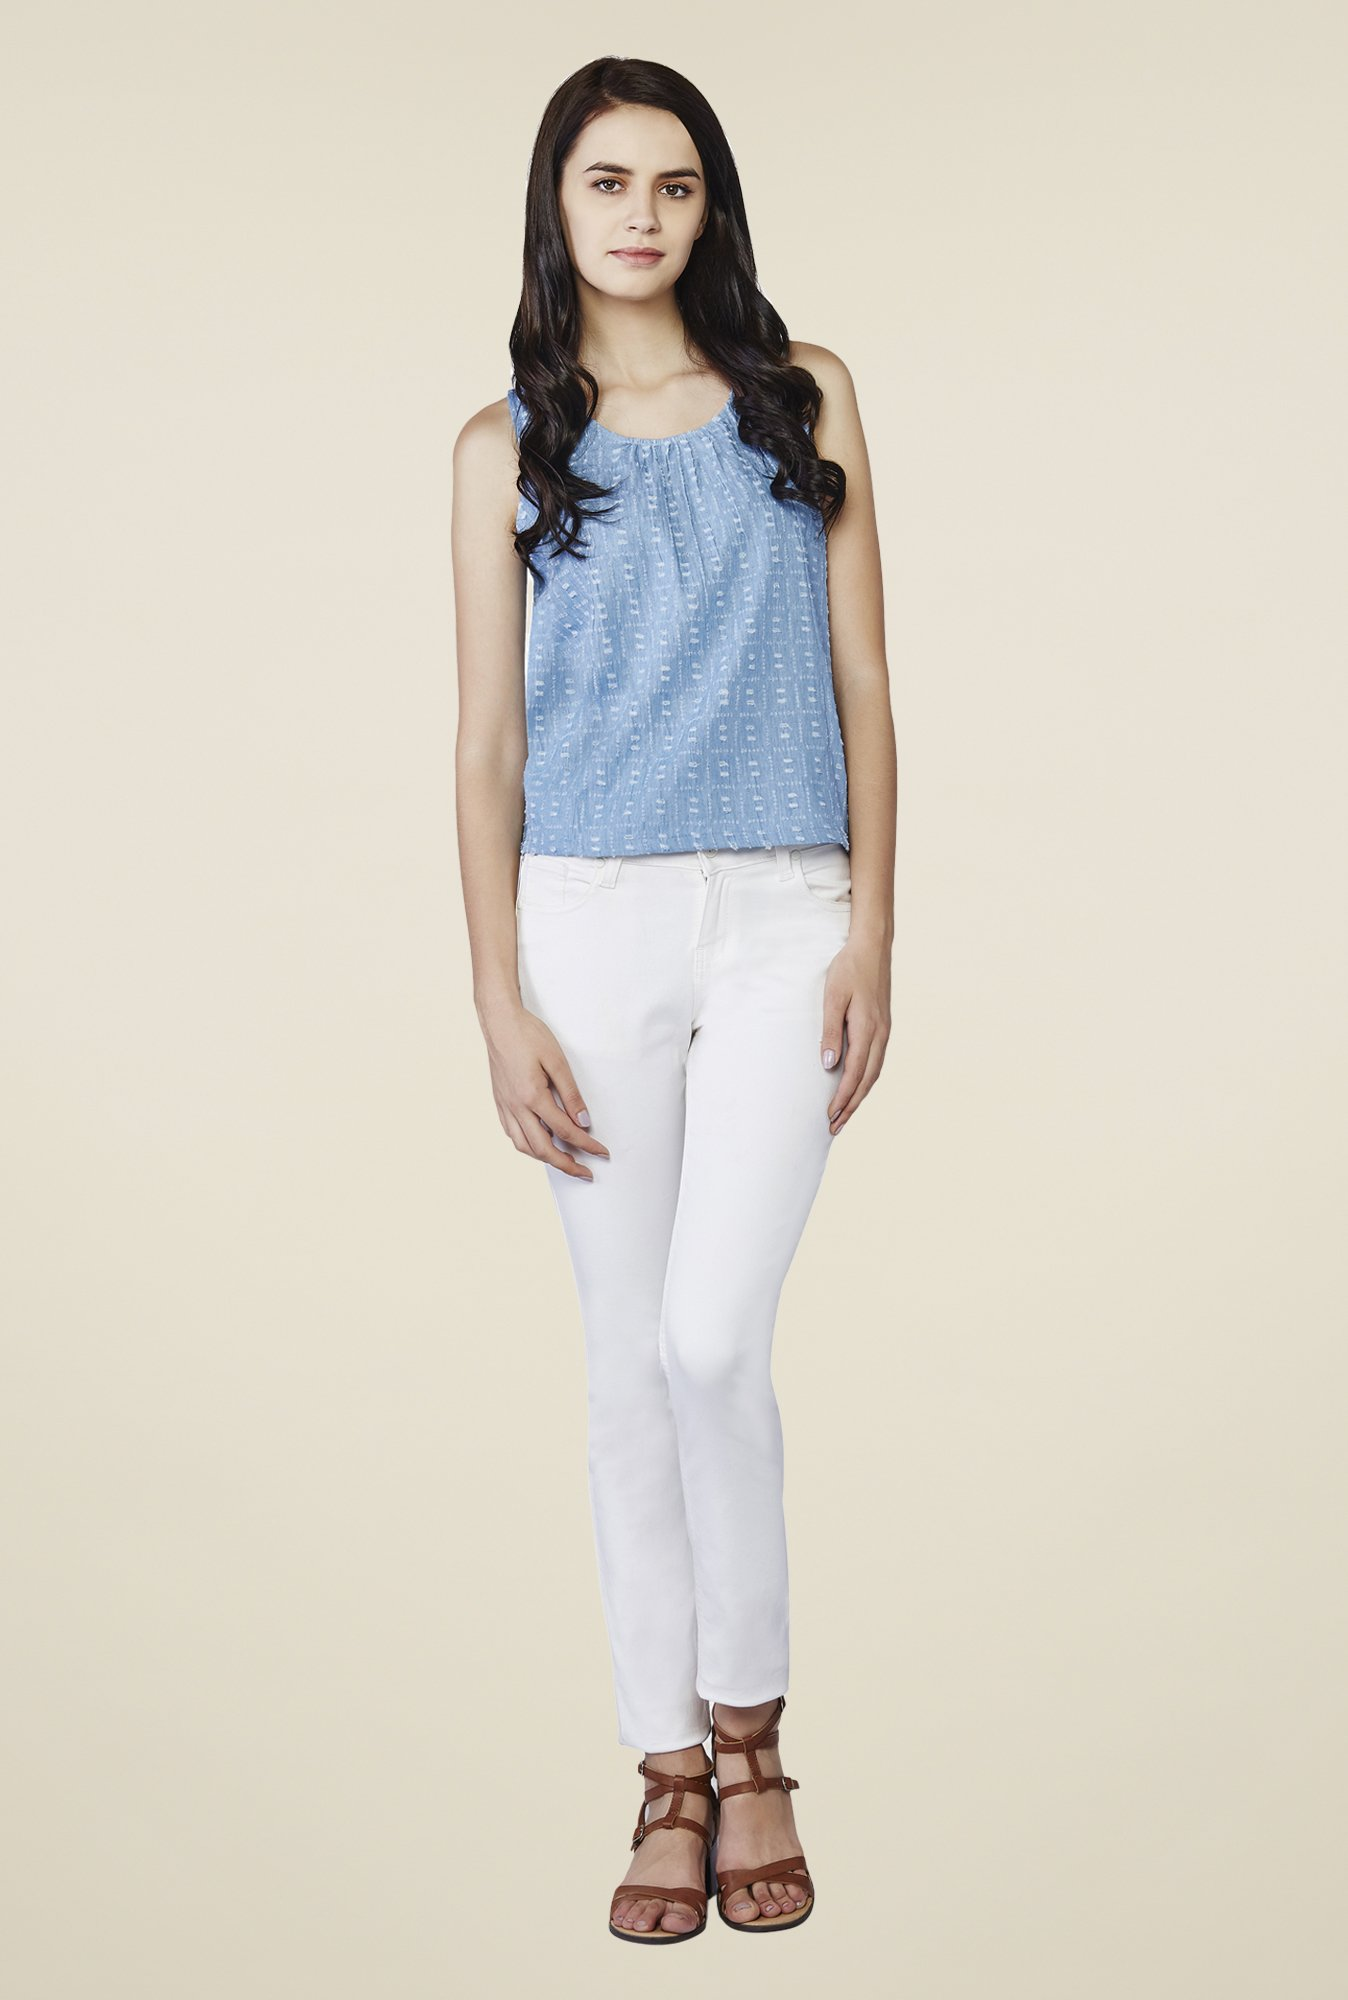 AND Blue Donna Printed Denim Top